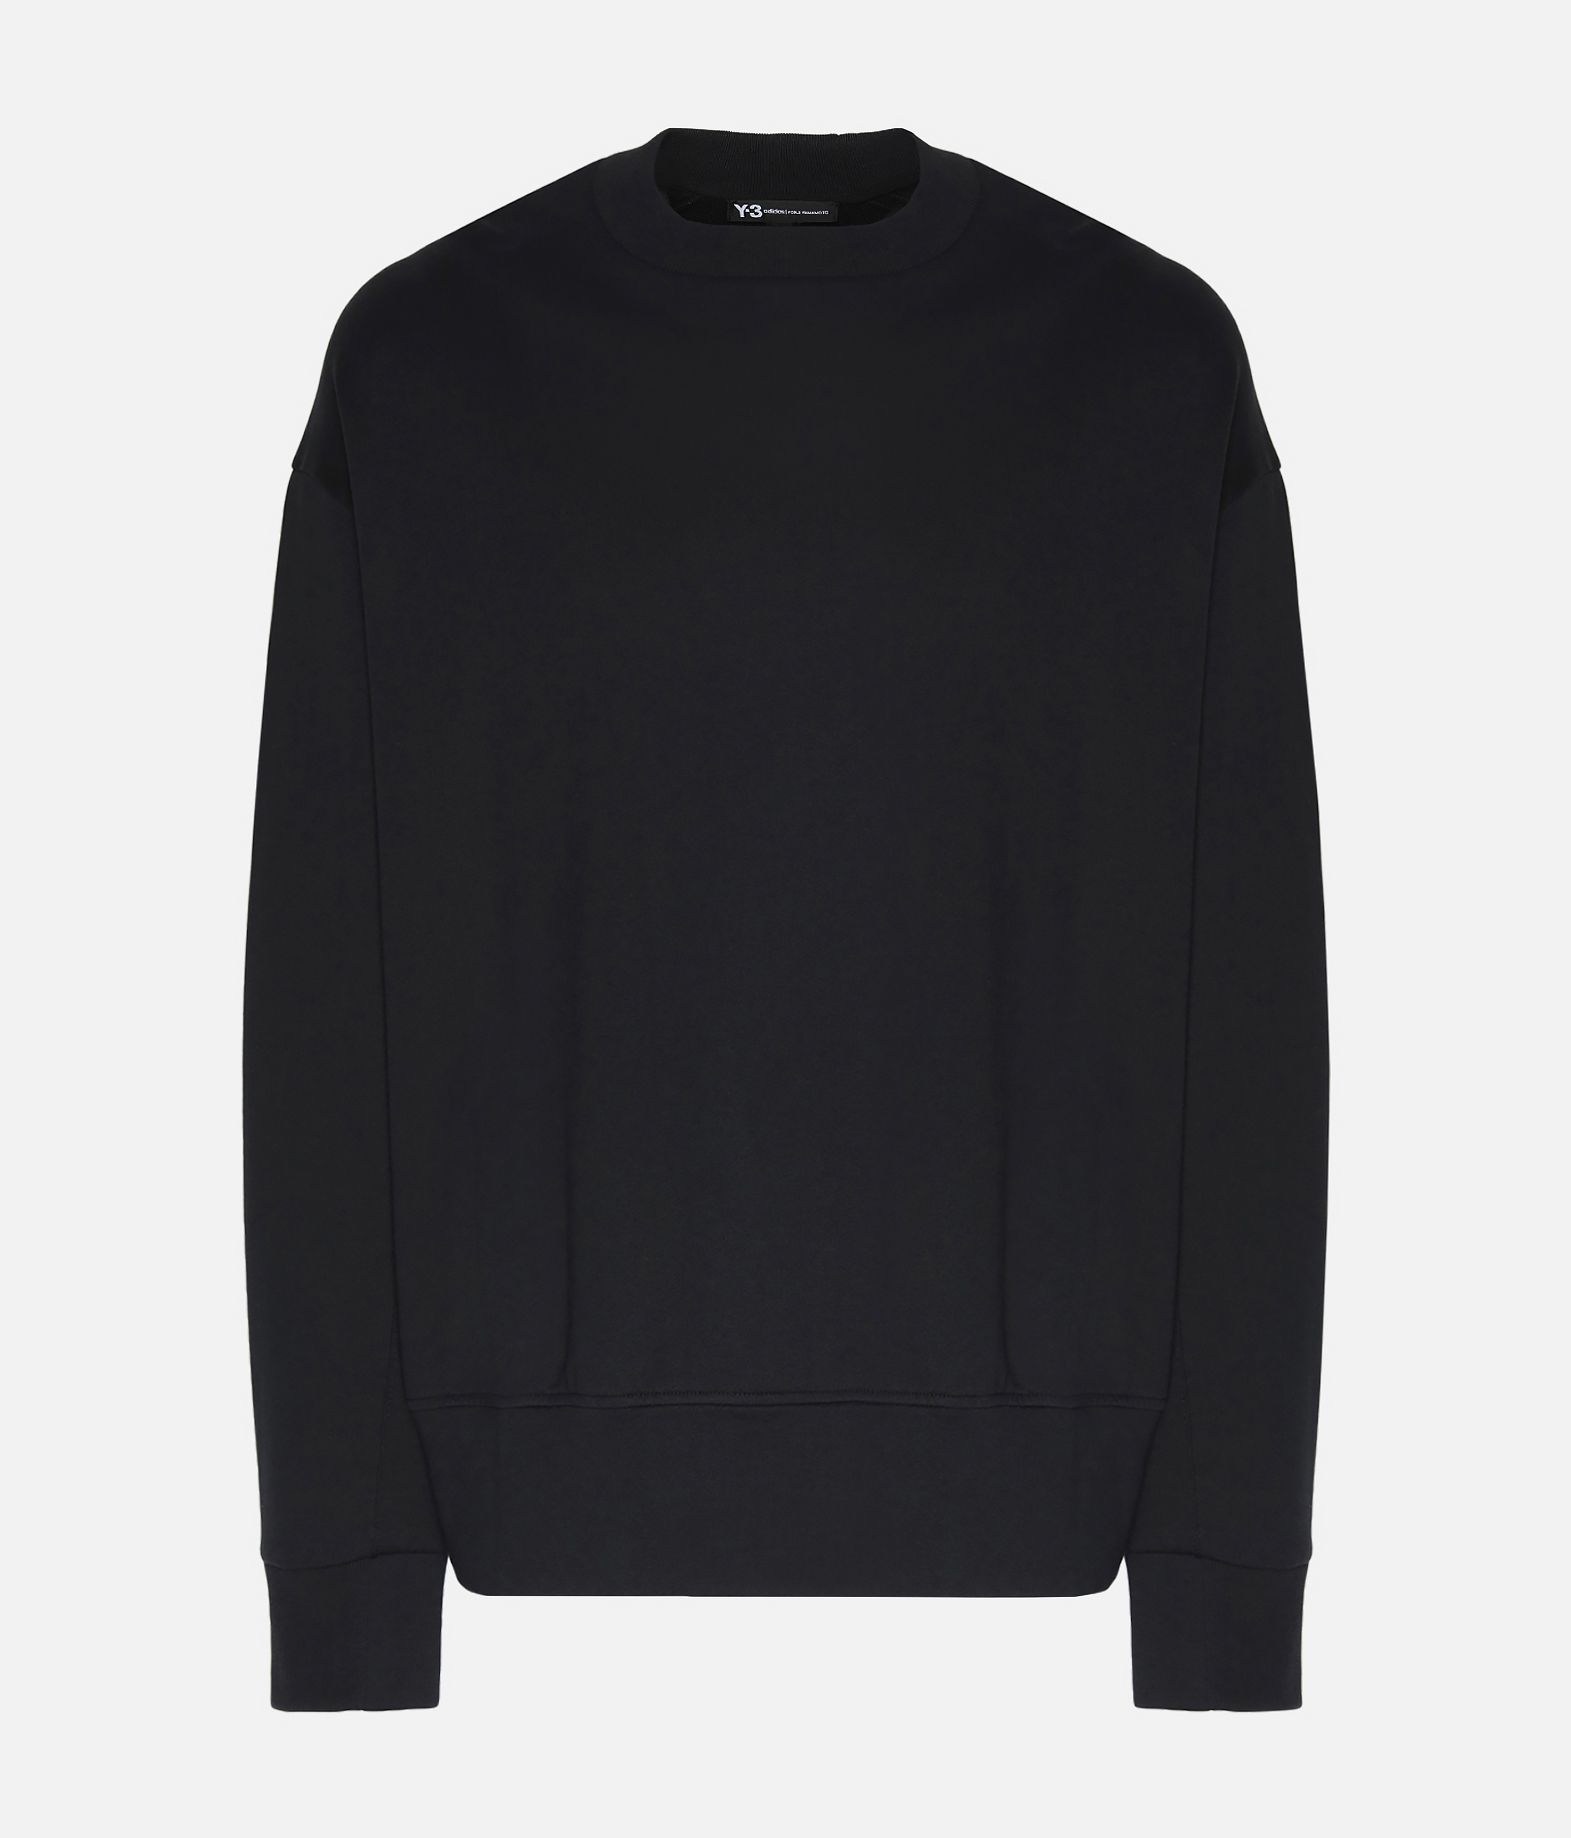 Y-3 Y-3 Signature Graphic Sweatshirt Sweatshirt Man f